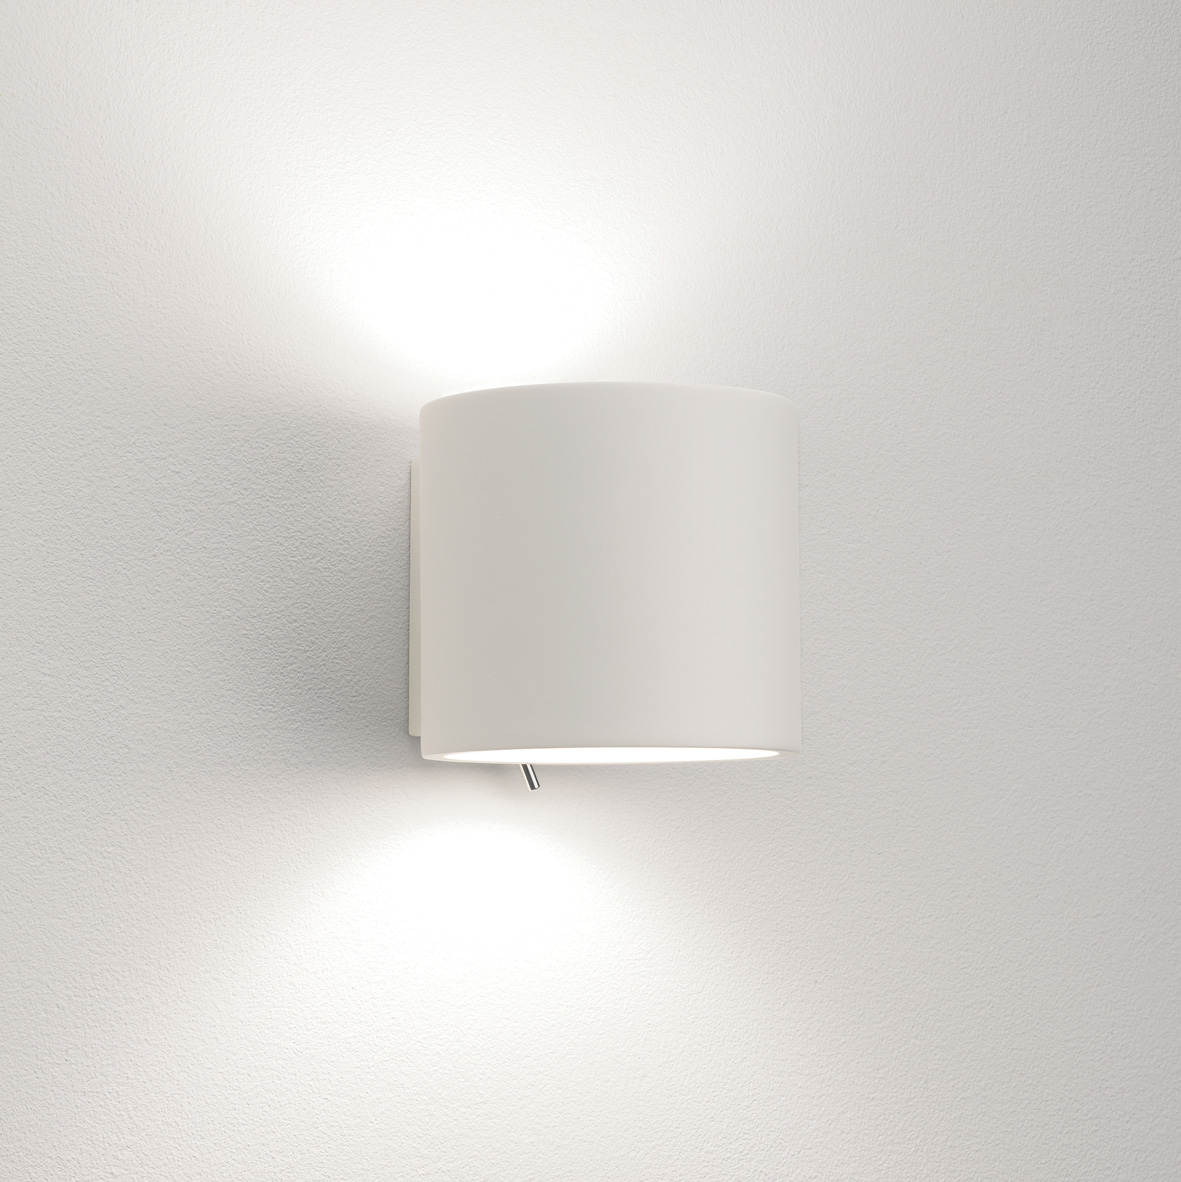 Astro brenta 0916 dimmable switched wall light 60w e14 lamp ip20 sentinel astro brenta 0916 dimmable switched wall light 60w e14 lamp ip20 white plaster aloadofball Image collections